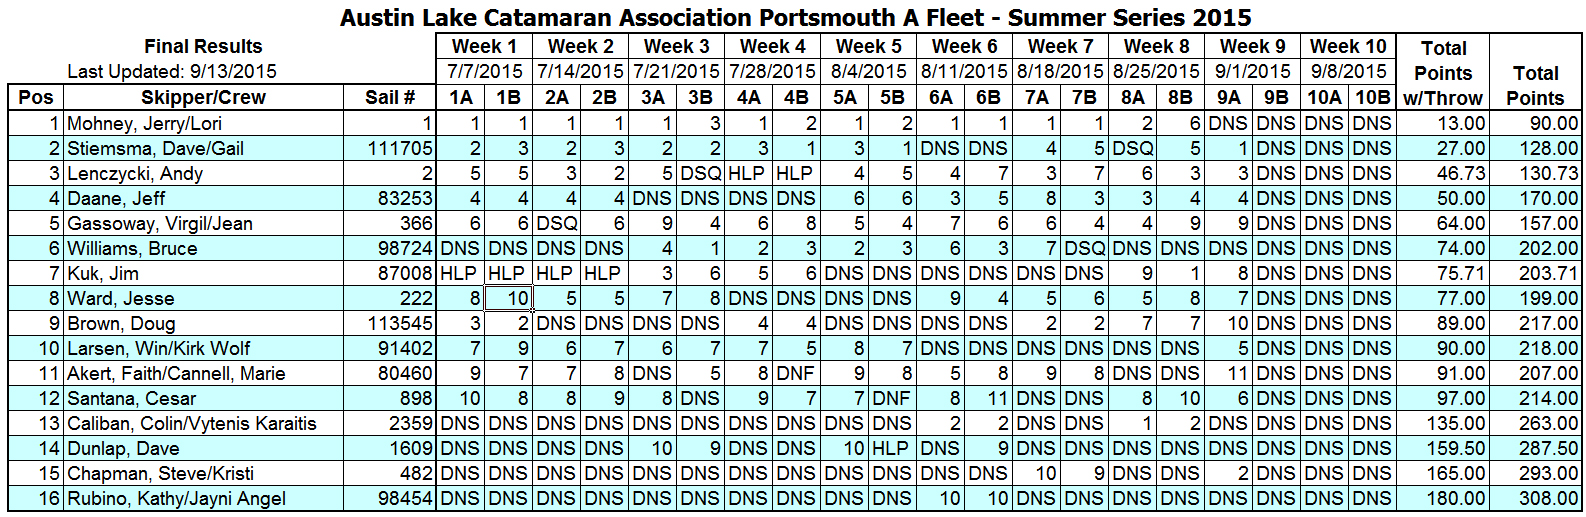 2015 Summer Portsmouth A Fleet Results (9-13-15)